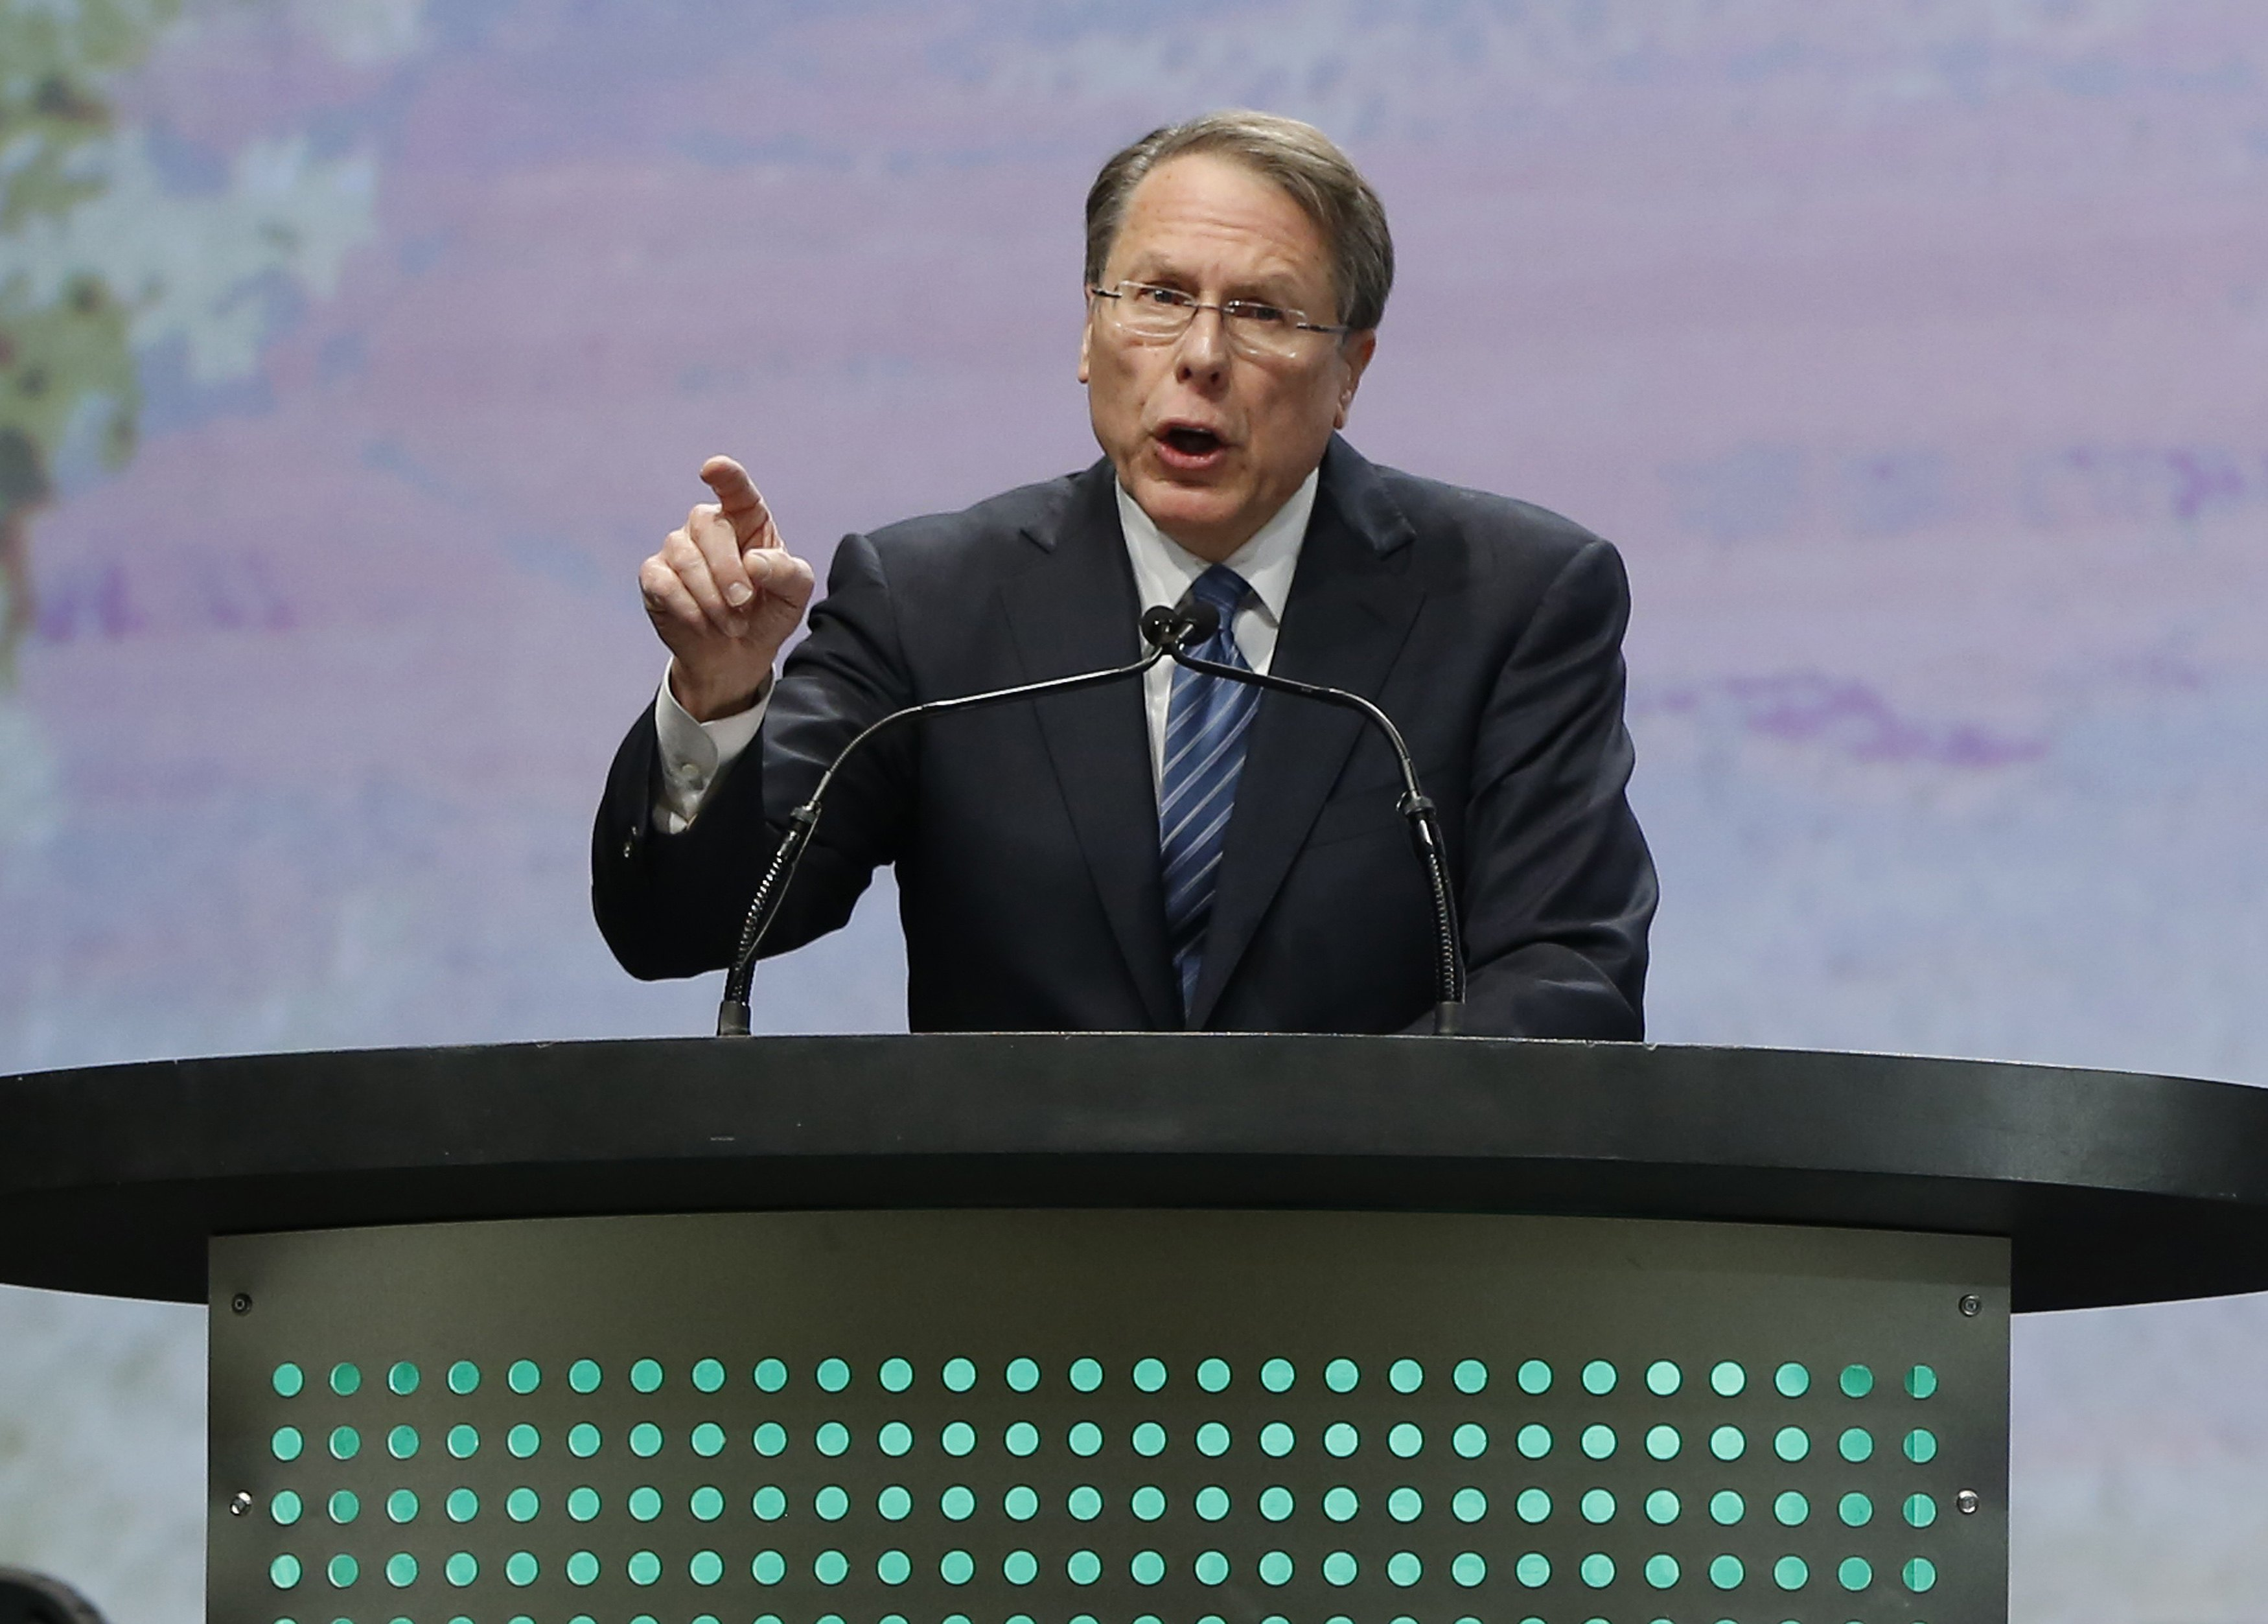 NRA Executive Vice President Wayne LaPierre at the Western Hunting and Conservation Expo in Salt Lake City in February. (Jim Urquhart/Reuters)